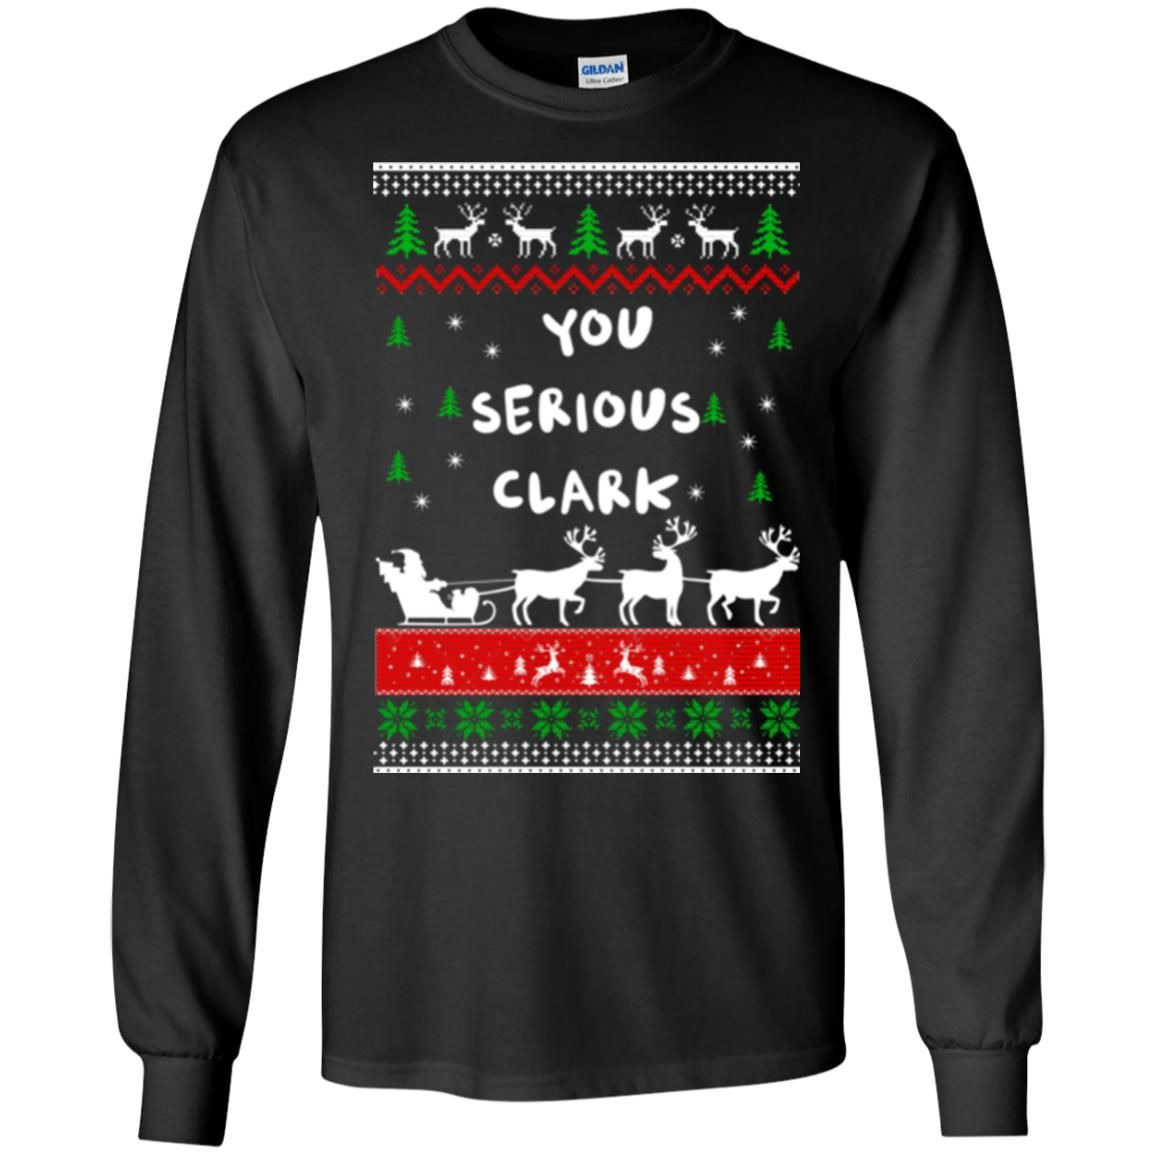 image 1719 - Christmas Vacation: You serious Clark sweater, t-shirt